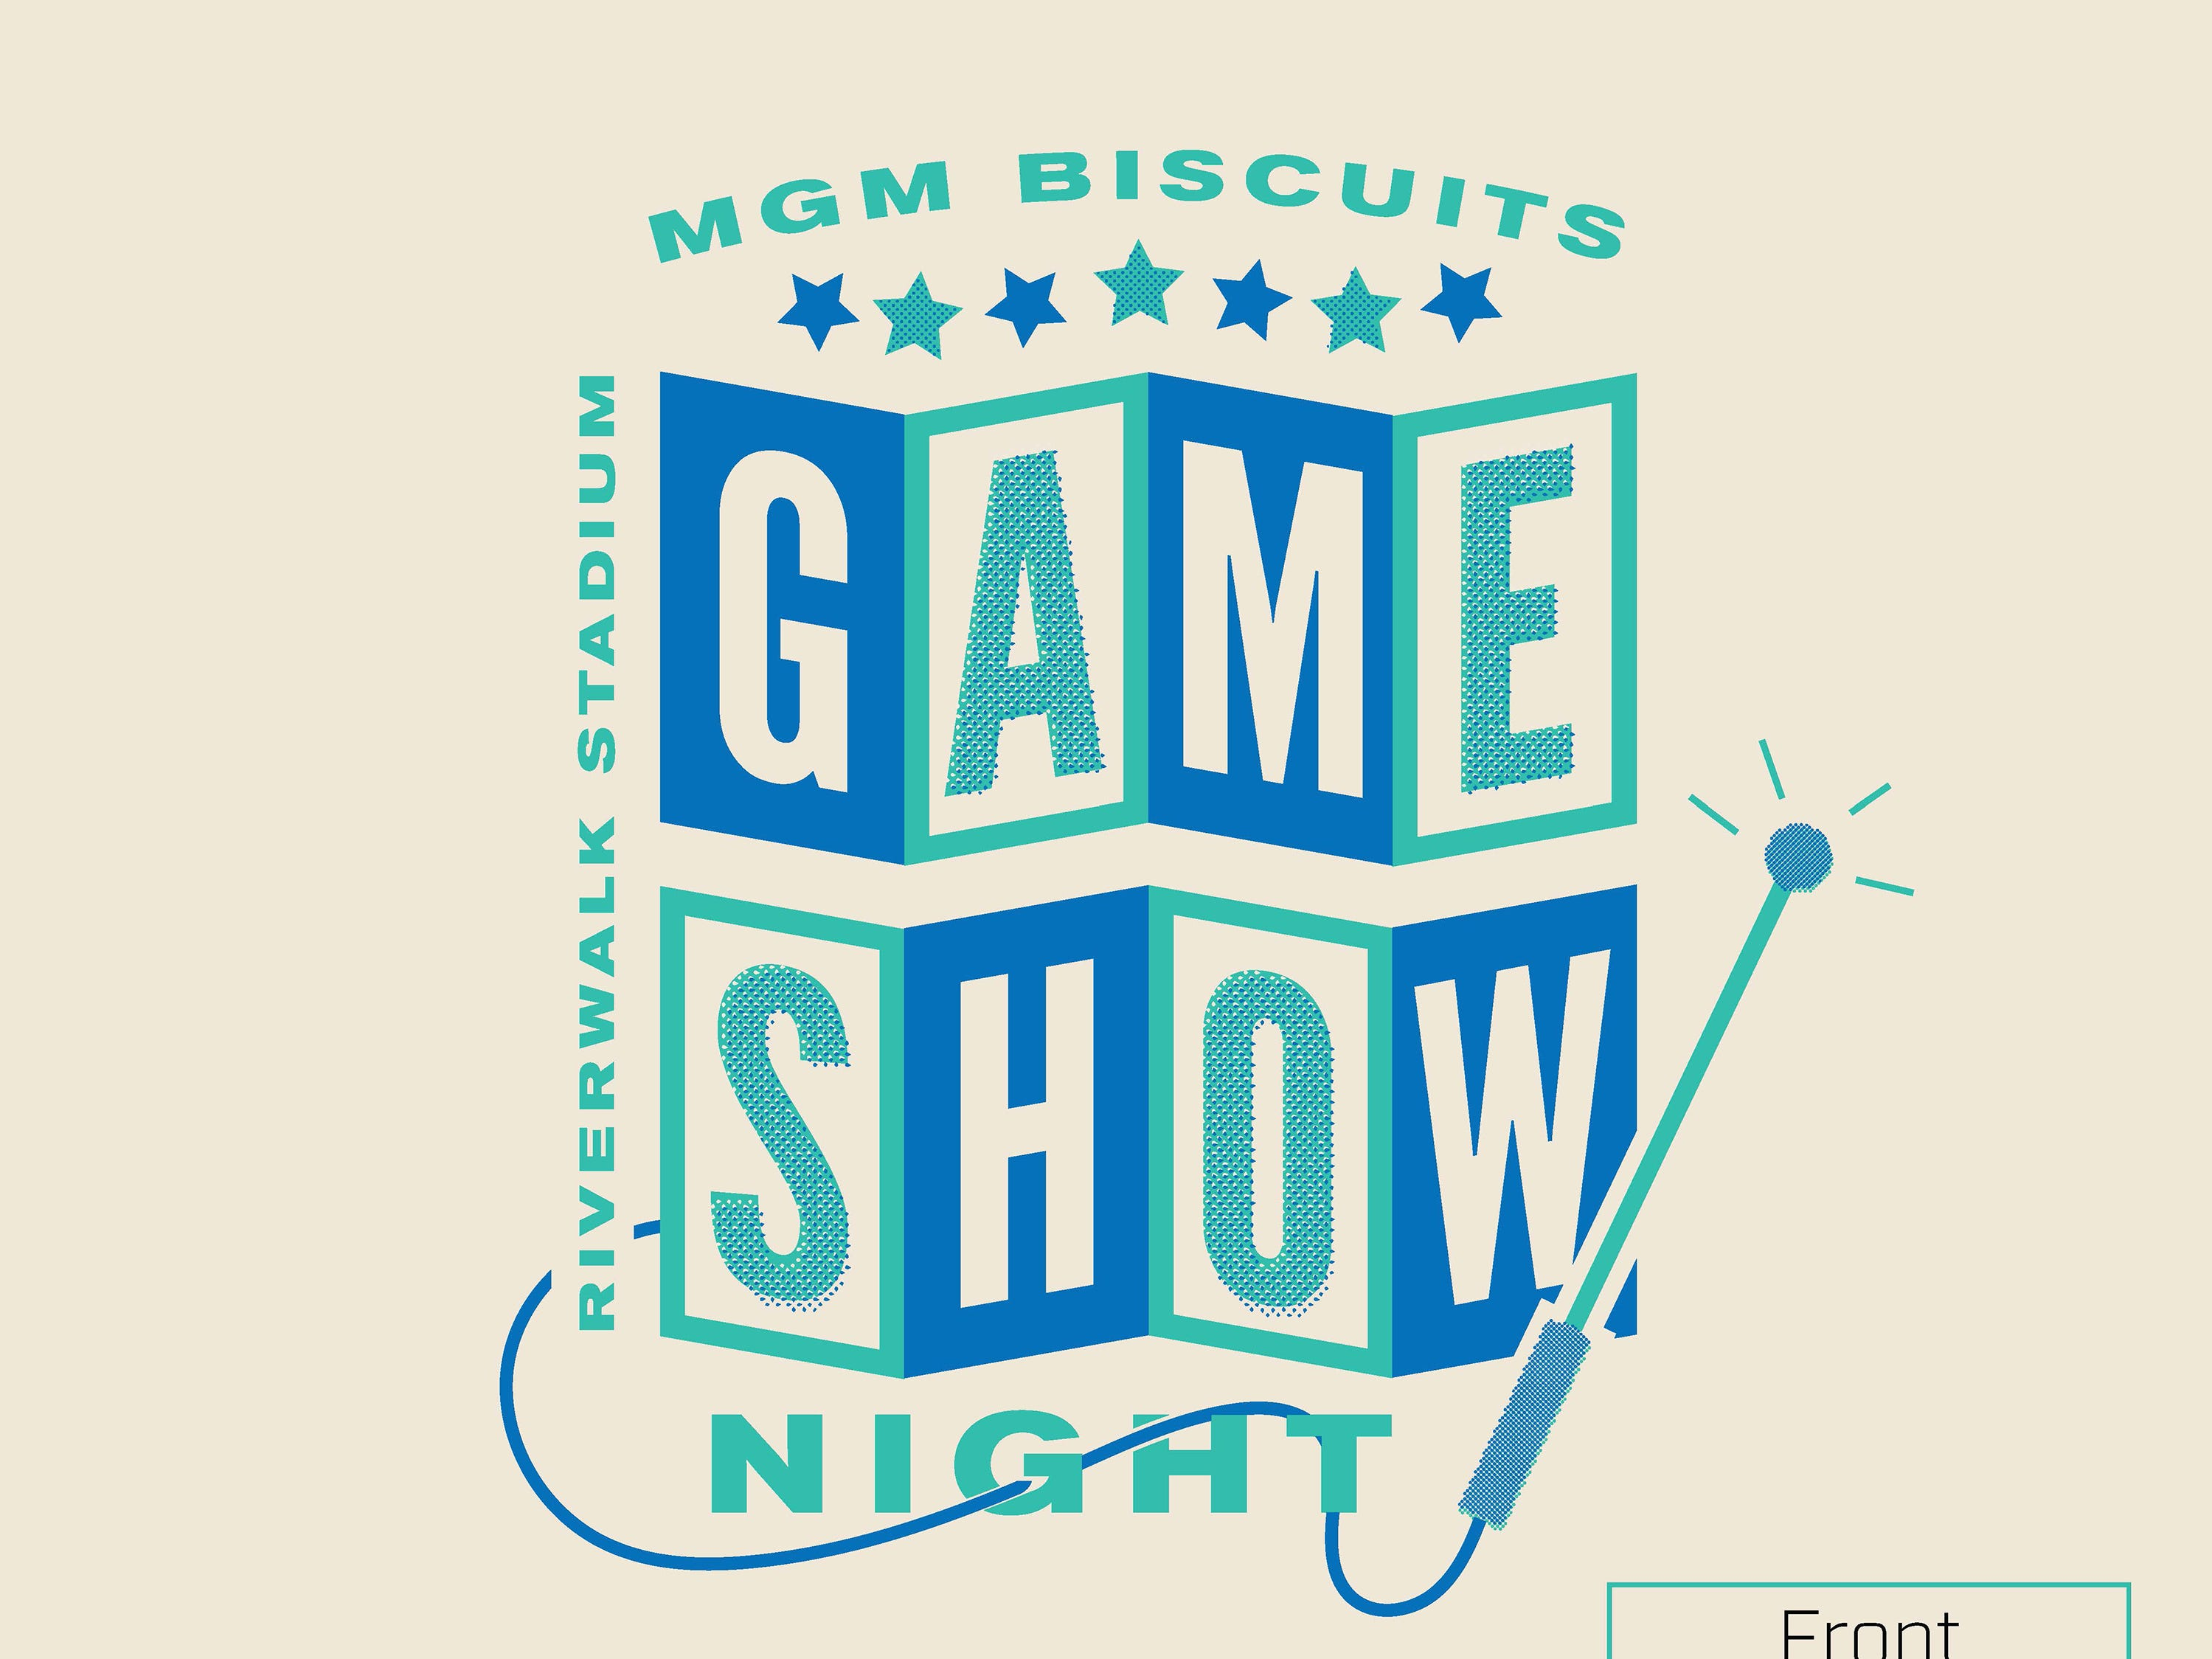 Montgomery Biscuits free t-shirt giveaway design for Game Show Night on June 13, 2019.